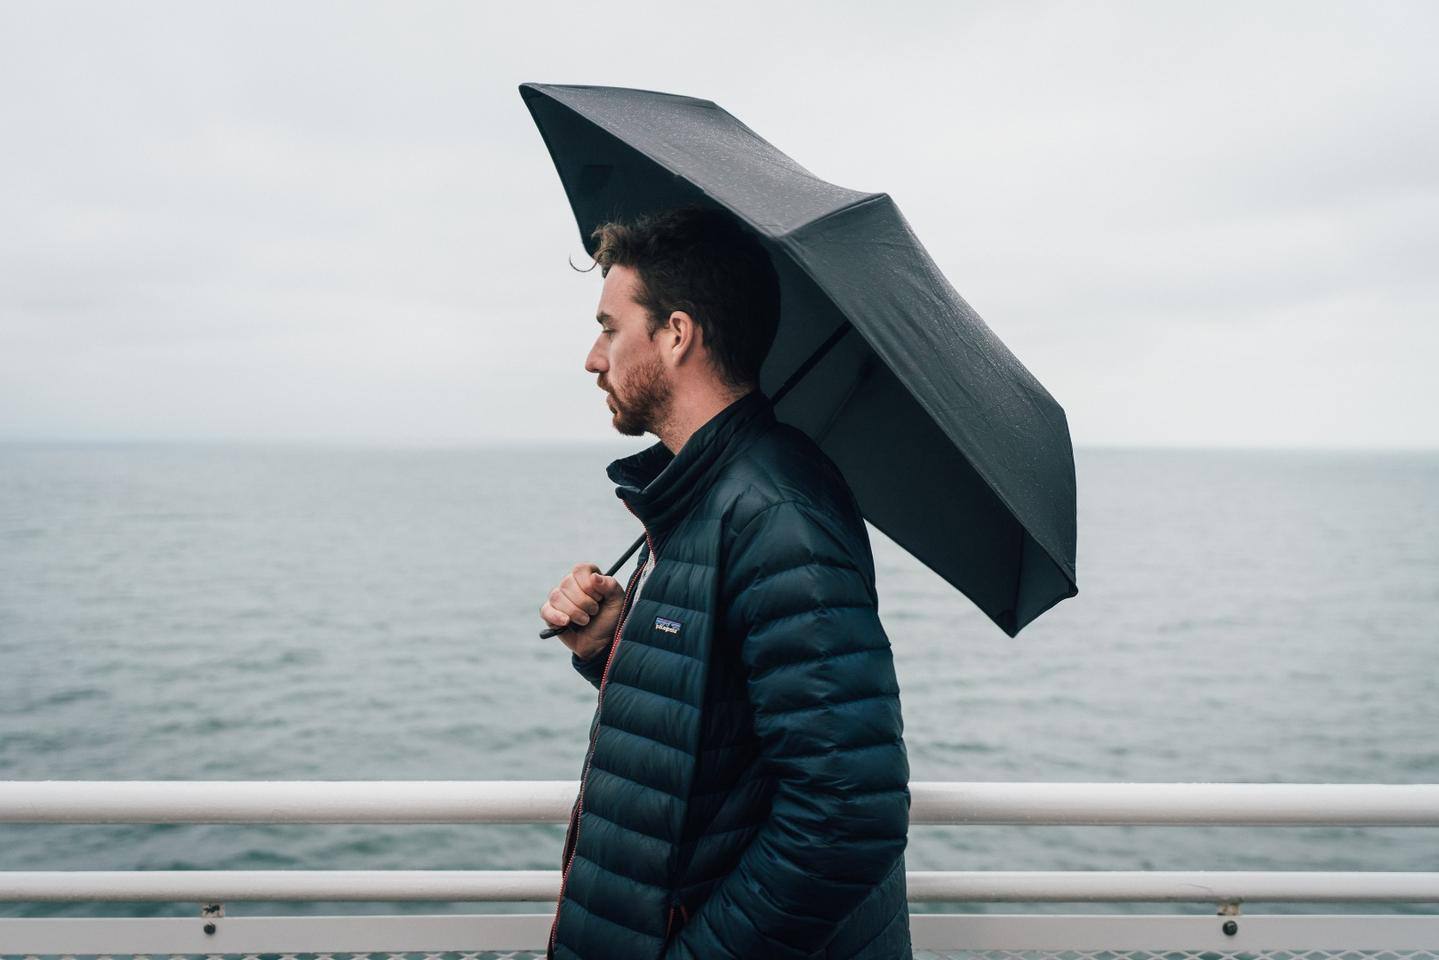 The Hedgehog Carbon umbrella will help you stay dry in stormy weather